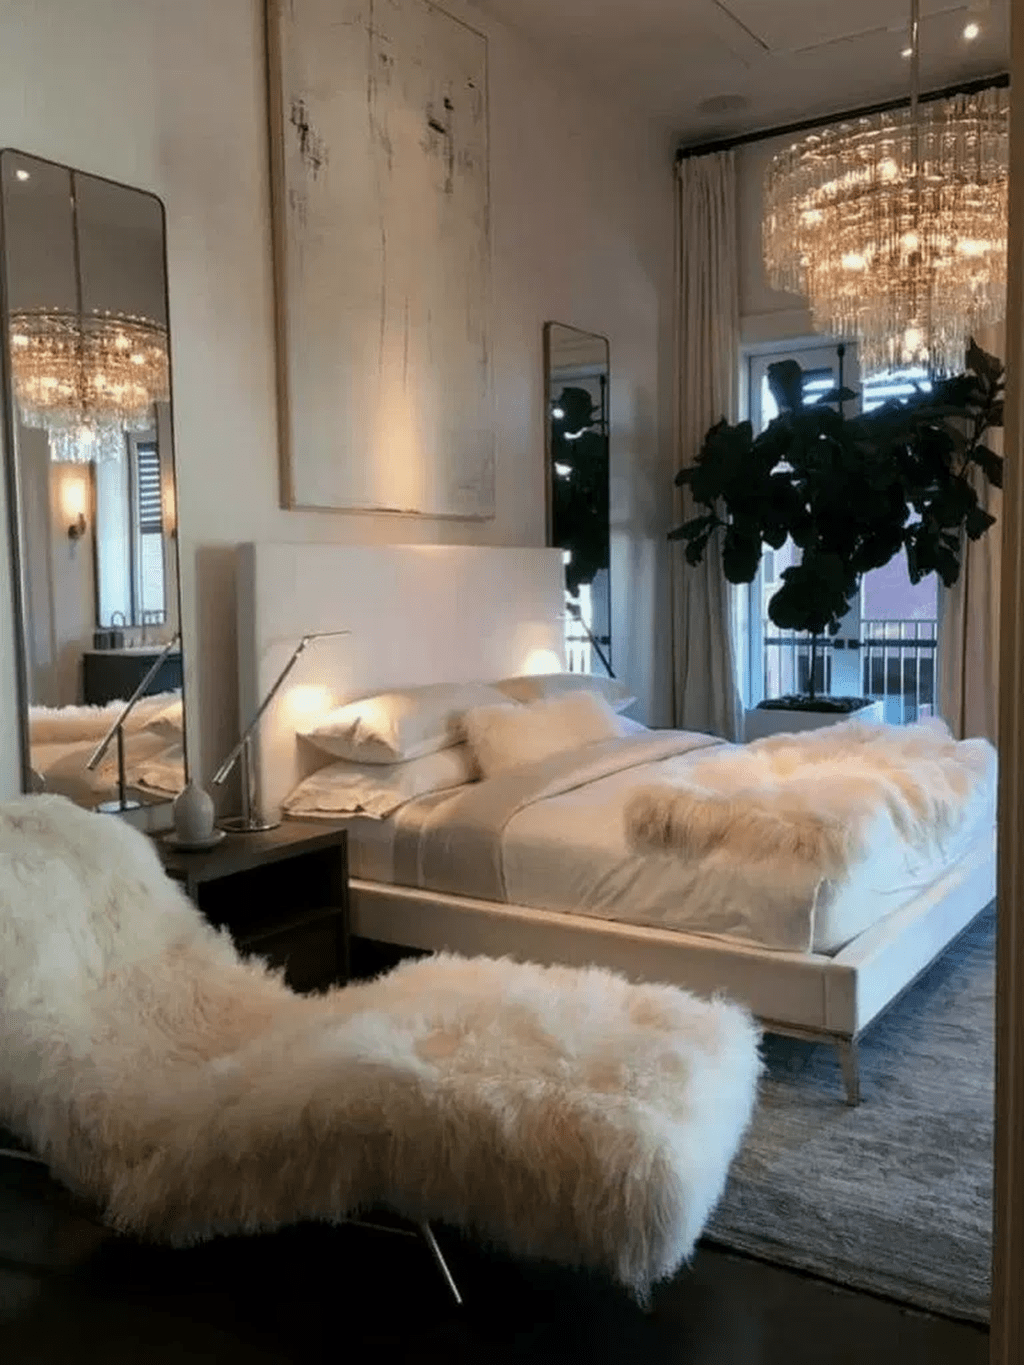 Some Tips for Your Winter Master Bedroom Decorations is part of Room decor -